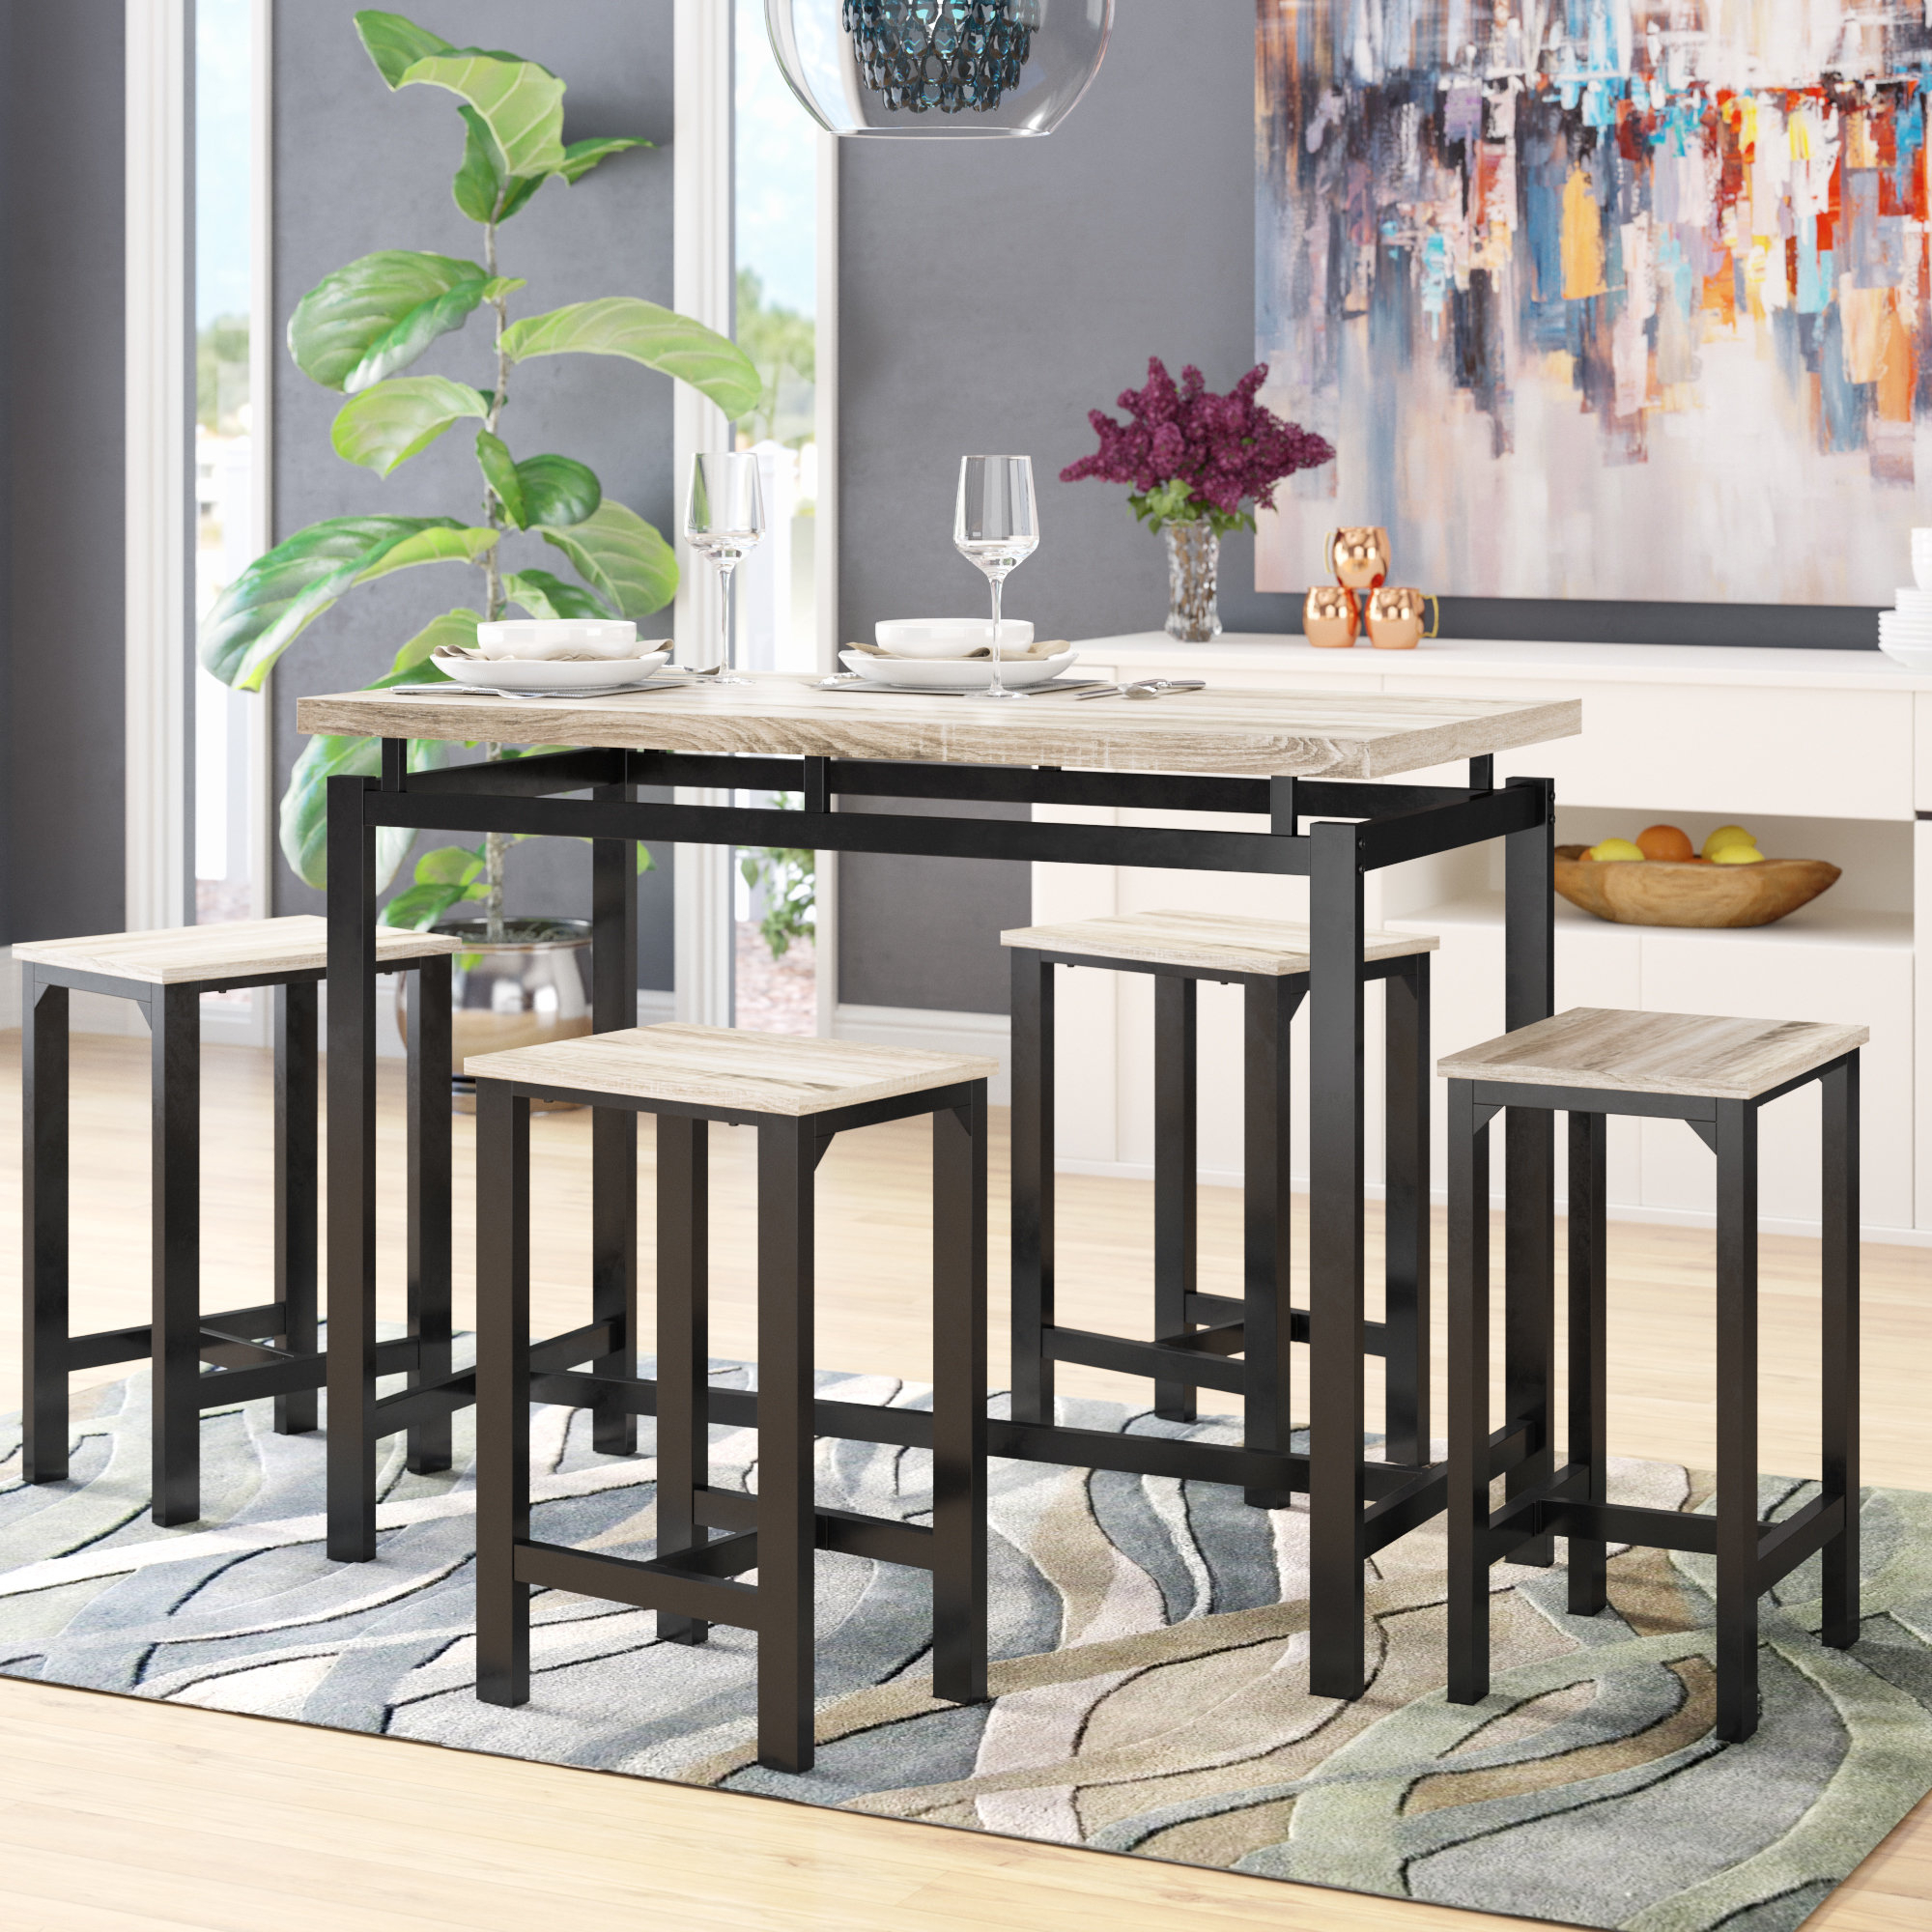 Weatherholt Dining Tables In Recent Latitude Run Weatherholt 5 Piece Pub Table Set & Reviews (View 21 of 25)